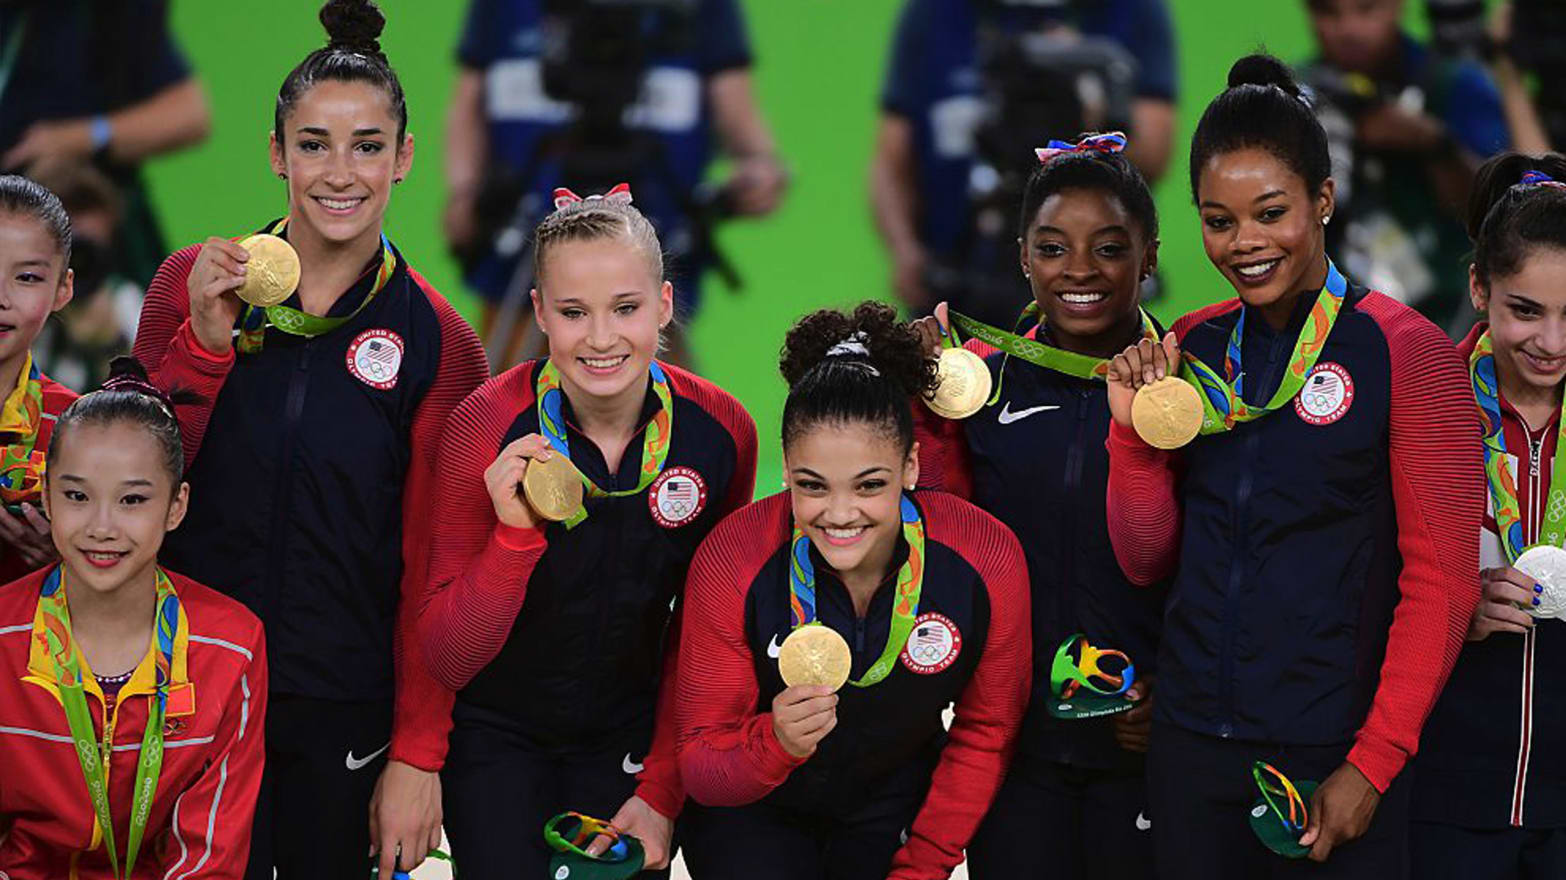 Who Has the Most Medals at the Rio Summer Olympics